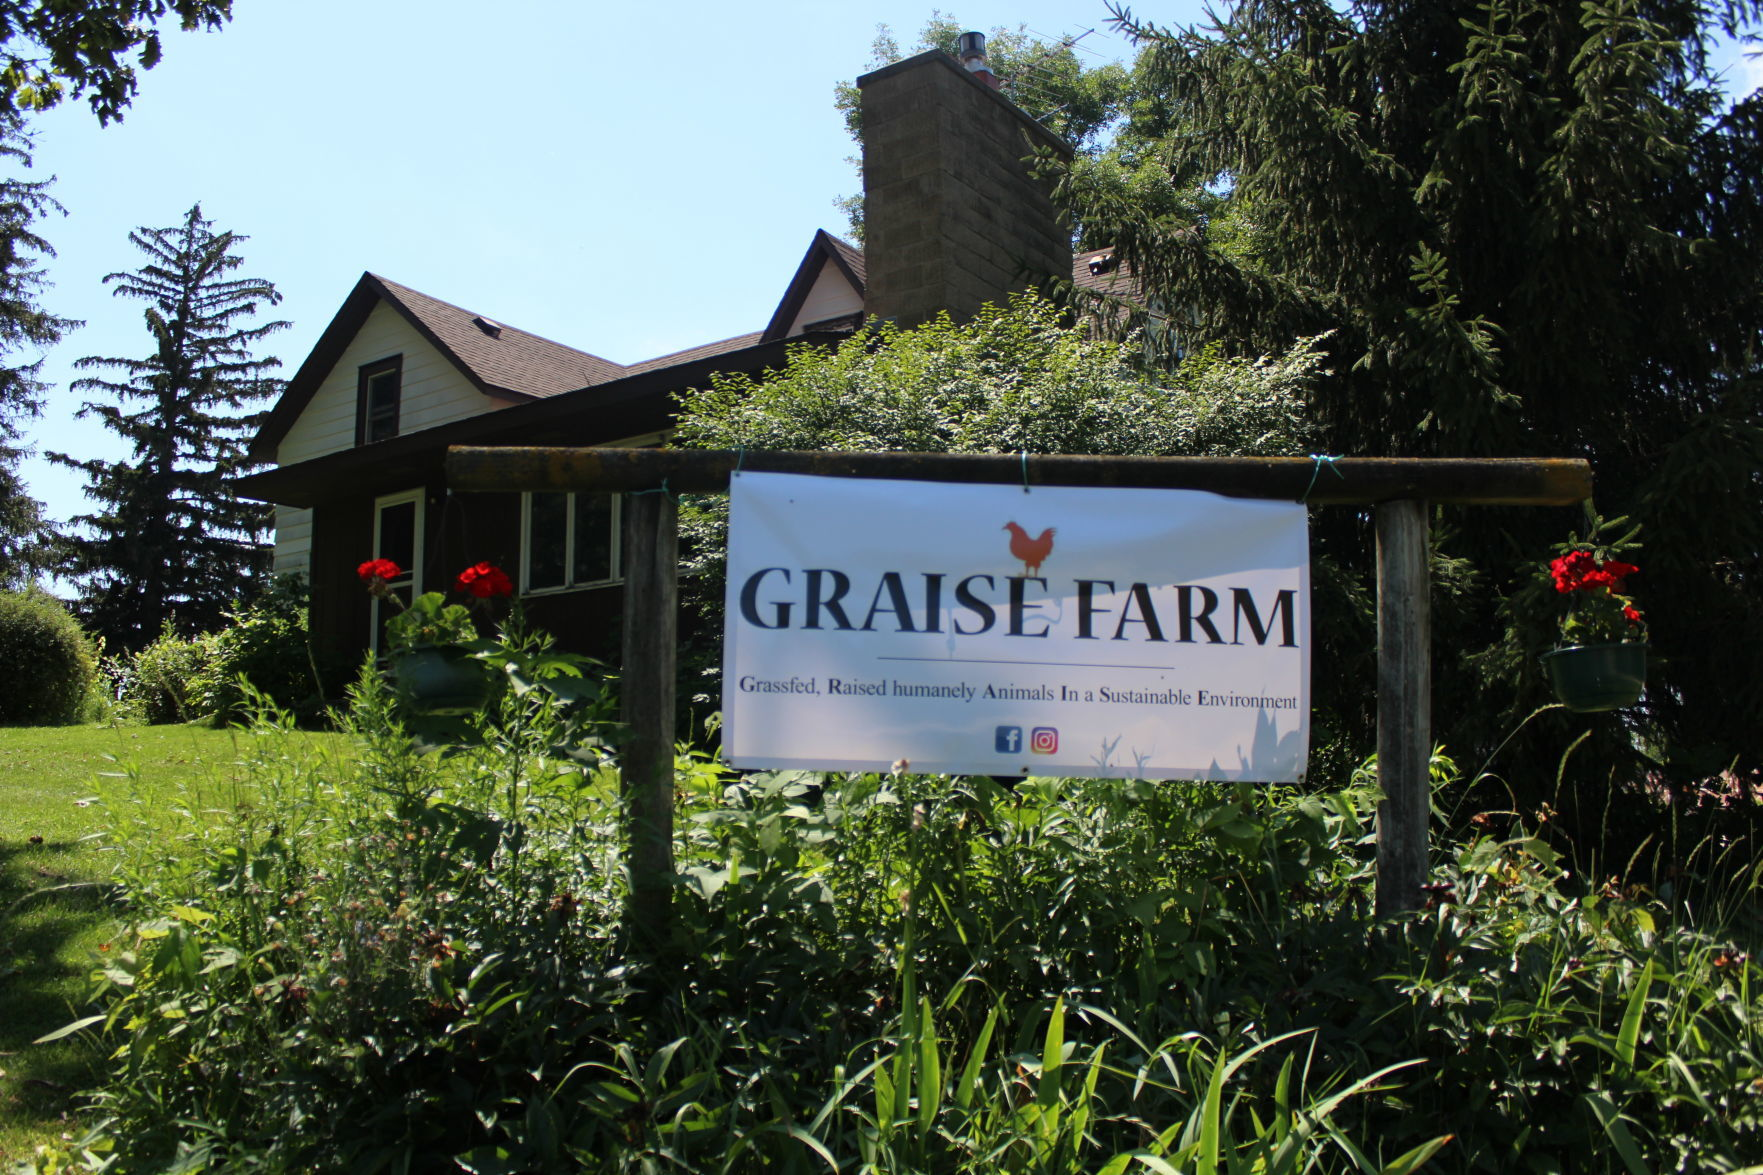 Graise Farm during the Eat Local Co op